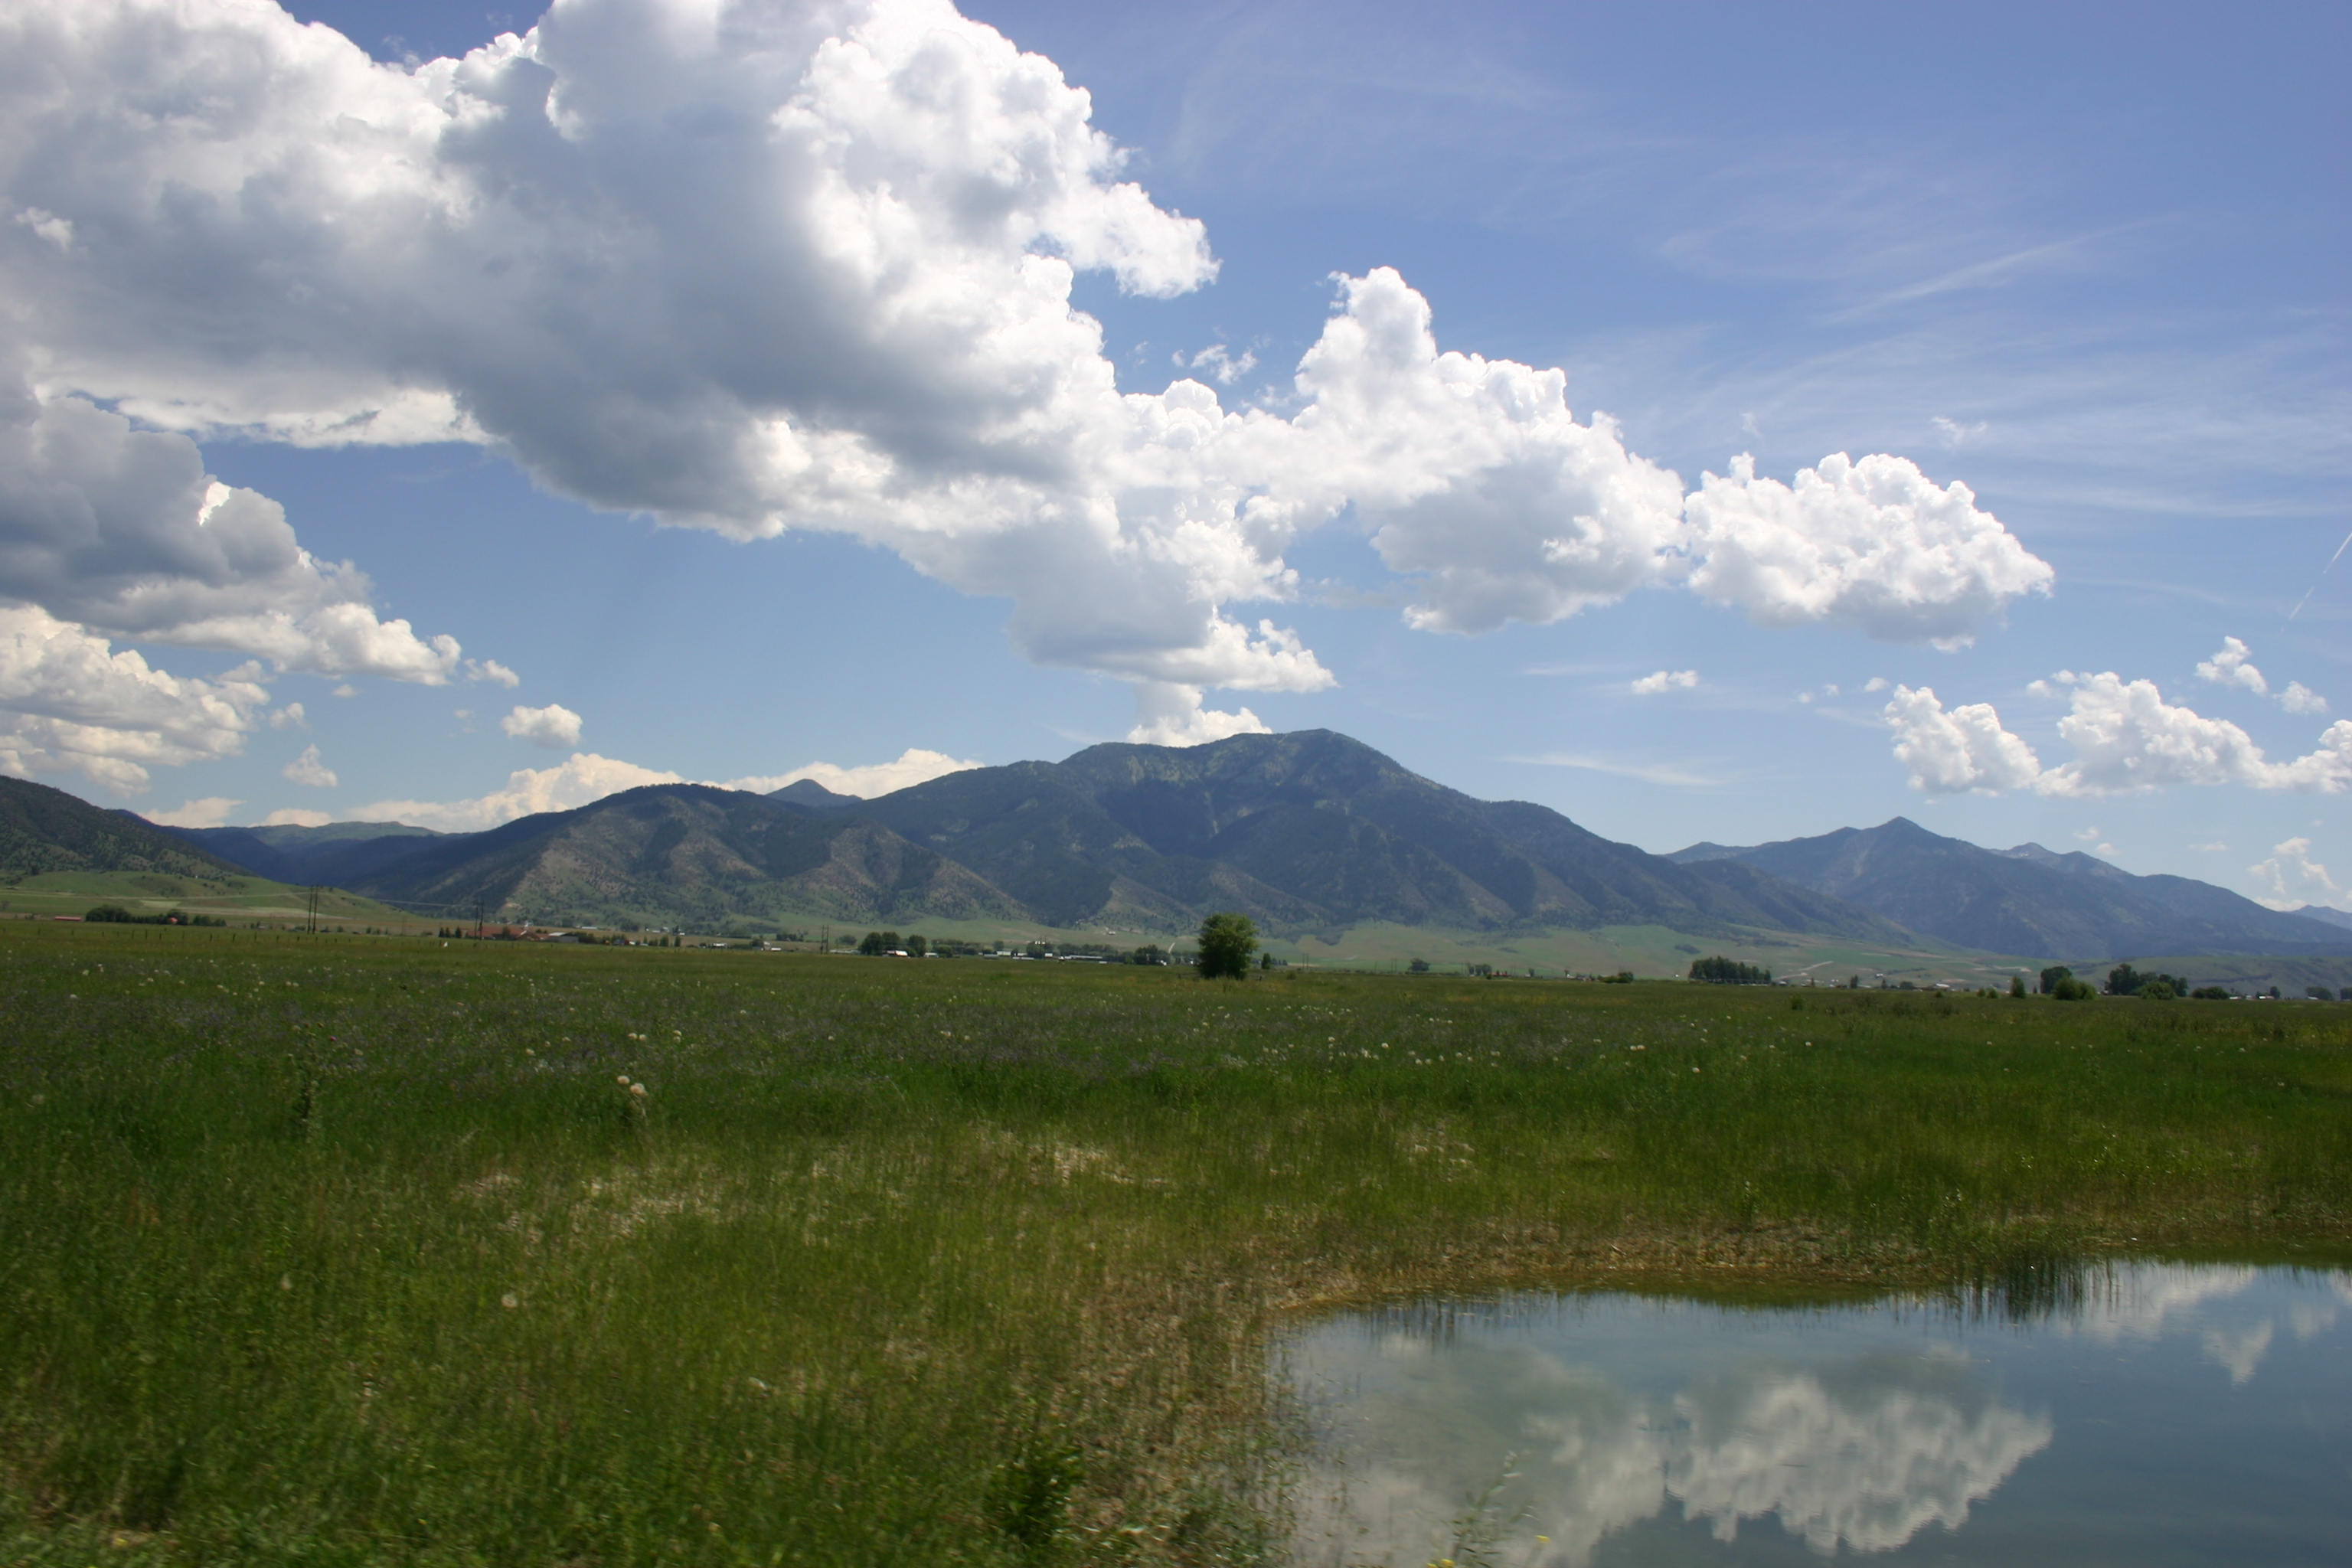 A pond reflects fluffy white clouds on a mountain-flanked plain in Idaho.